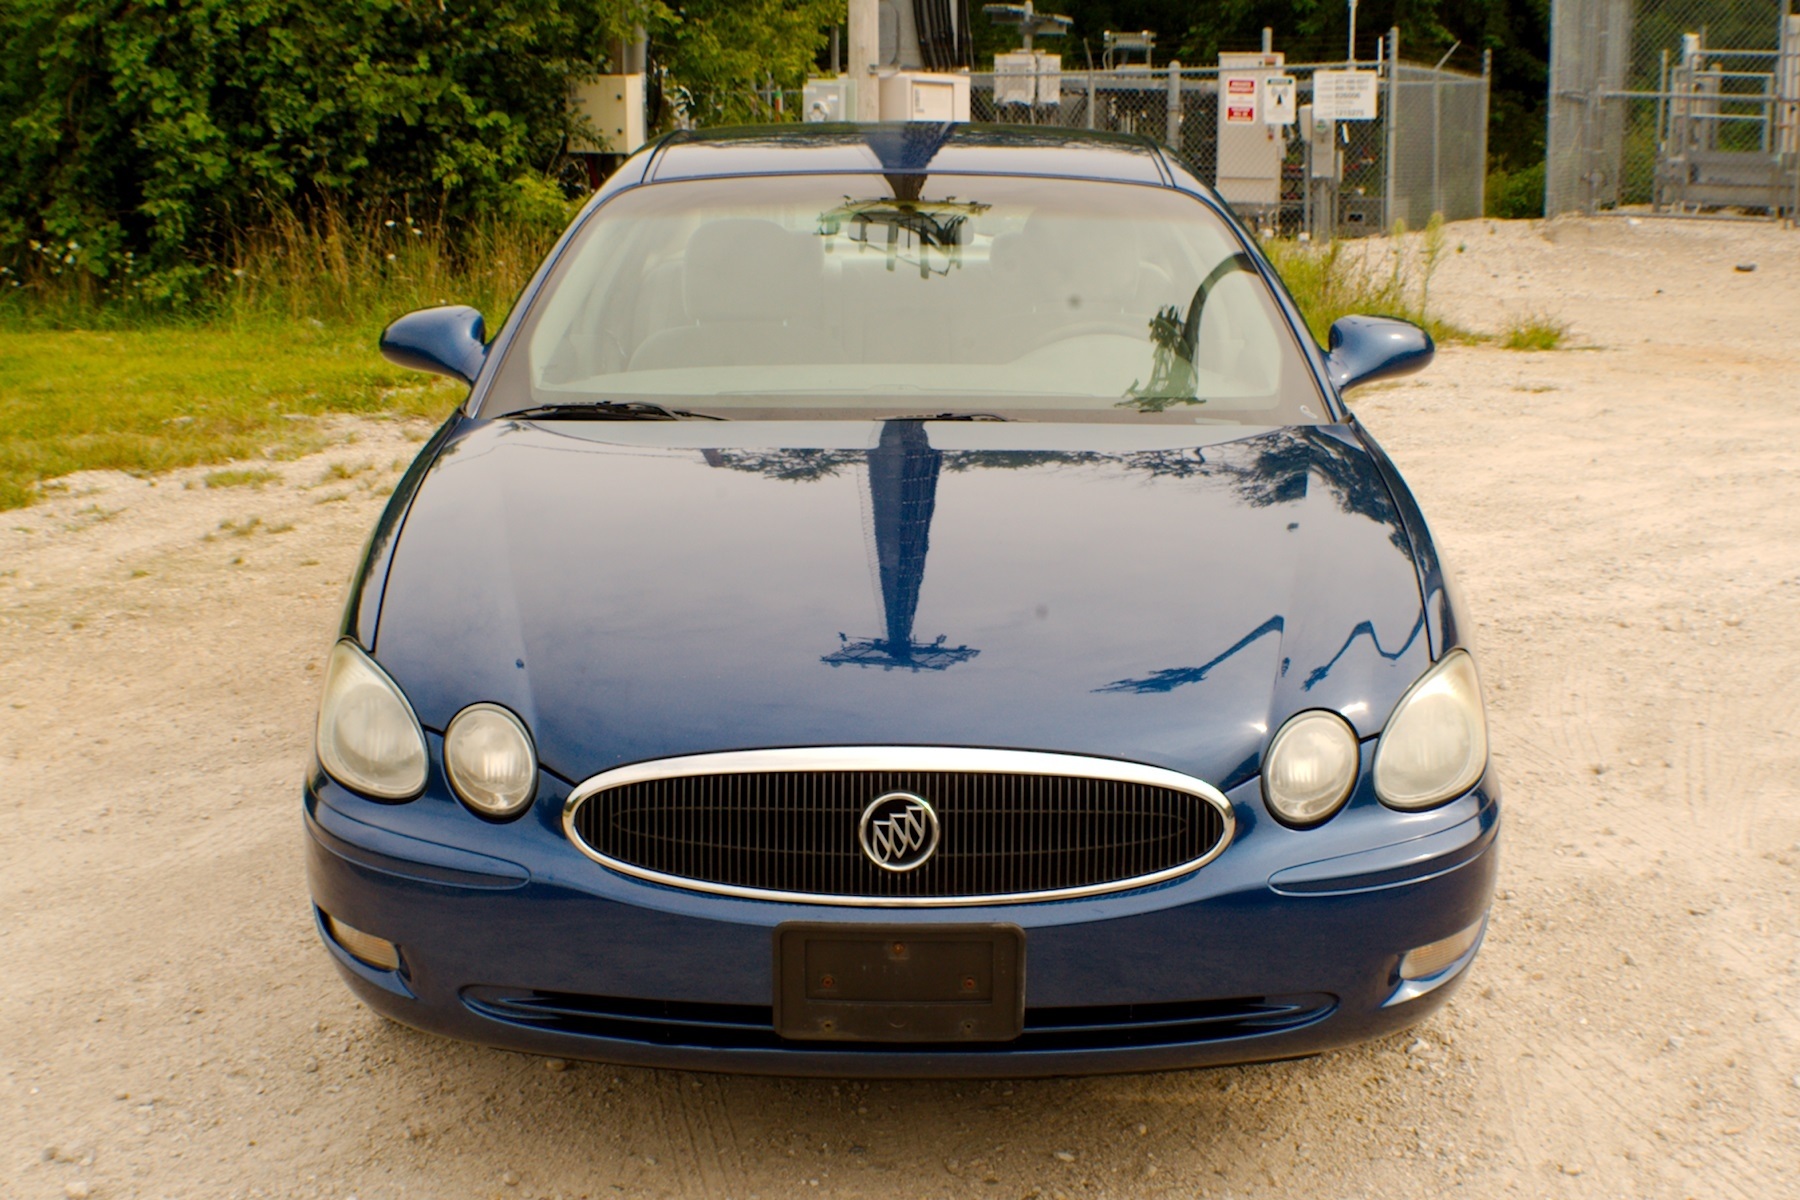 2005 Buick LaCrosse Blue Used Car Sedan Sale Gurnee Kenosha Mchenry Chicago Illinois